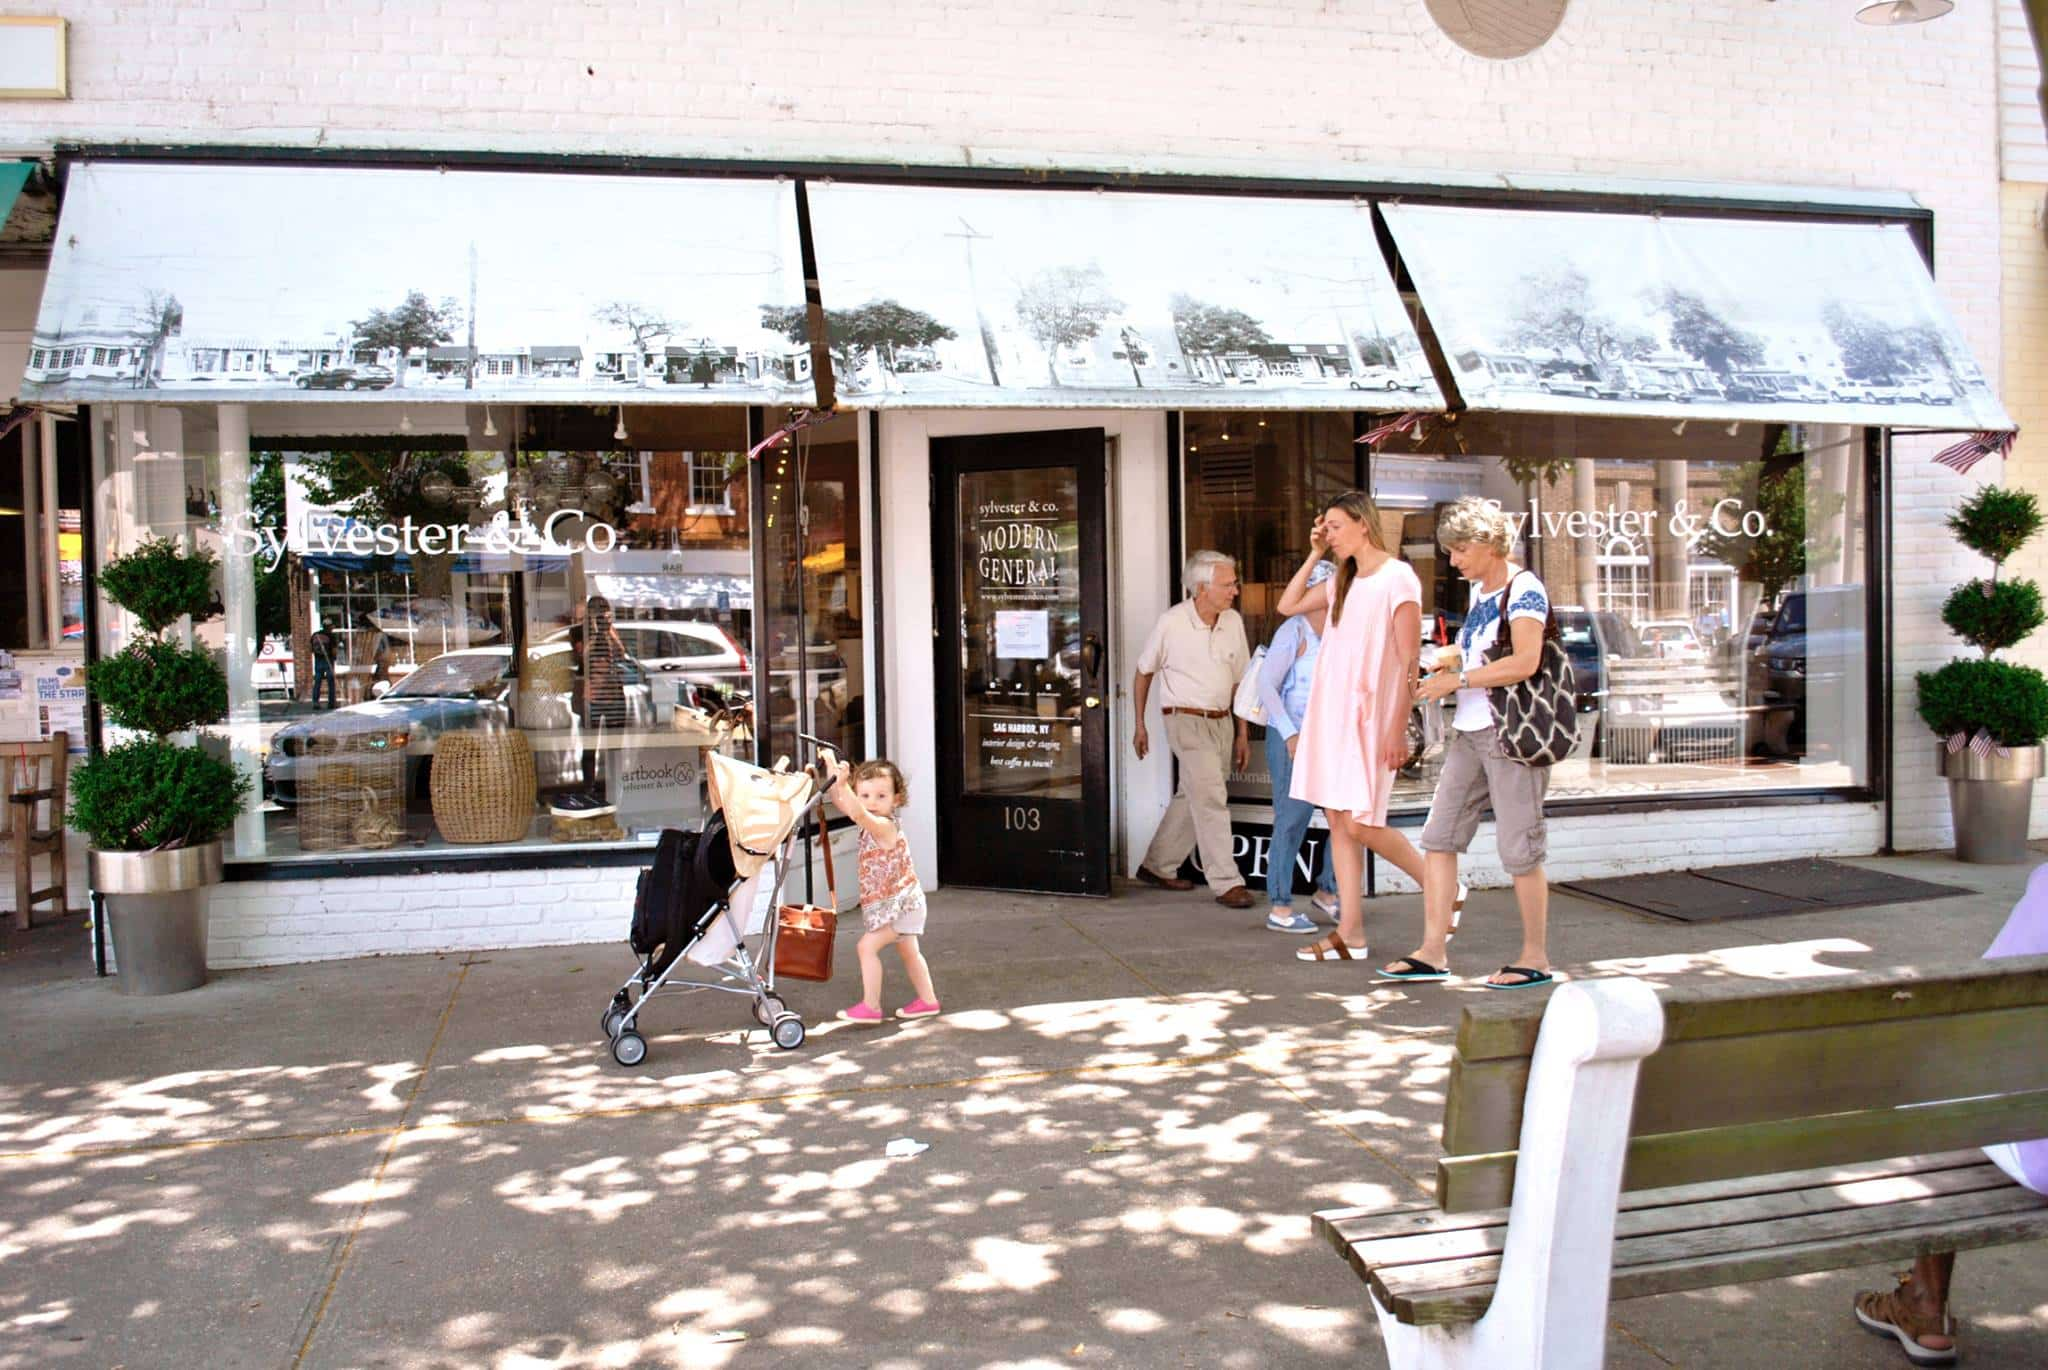 sylvester & co is a fun place to shop in sag harbor! - darci hether new york - here are my top 10 recommended desitnations